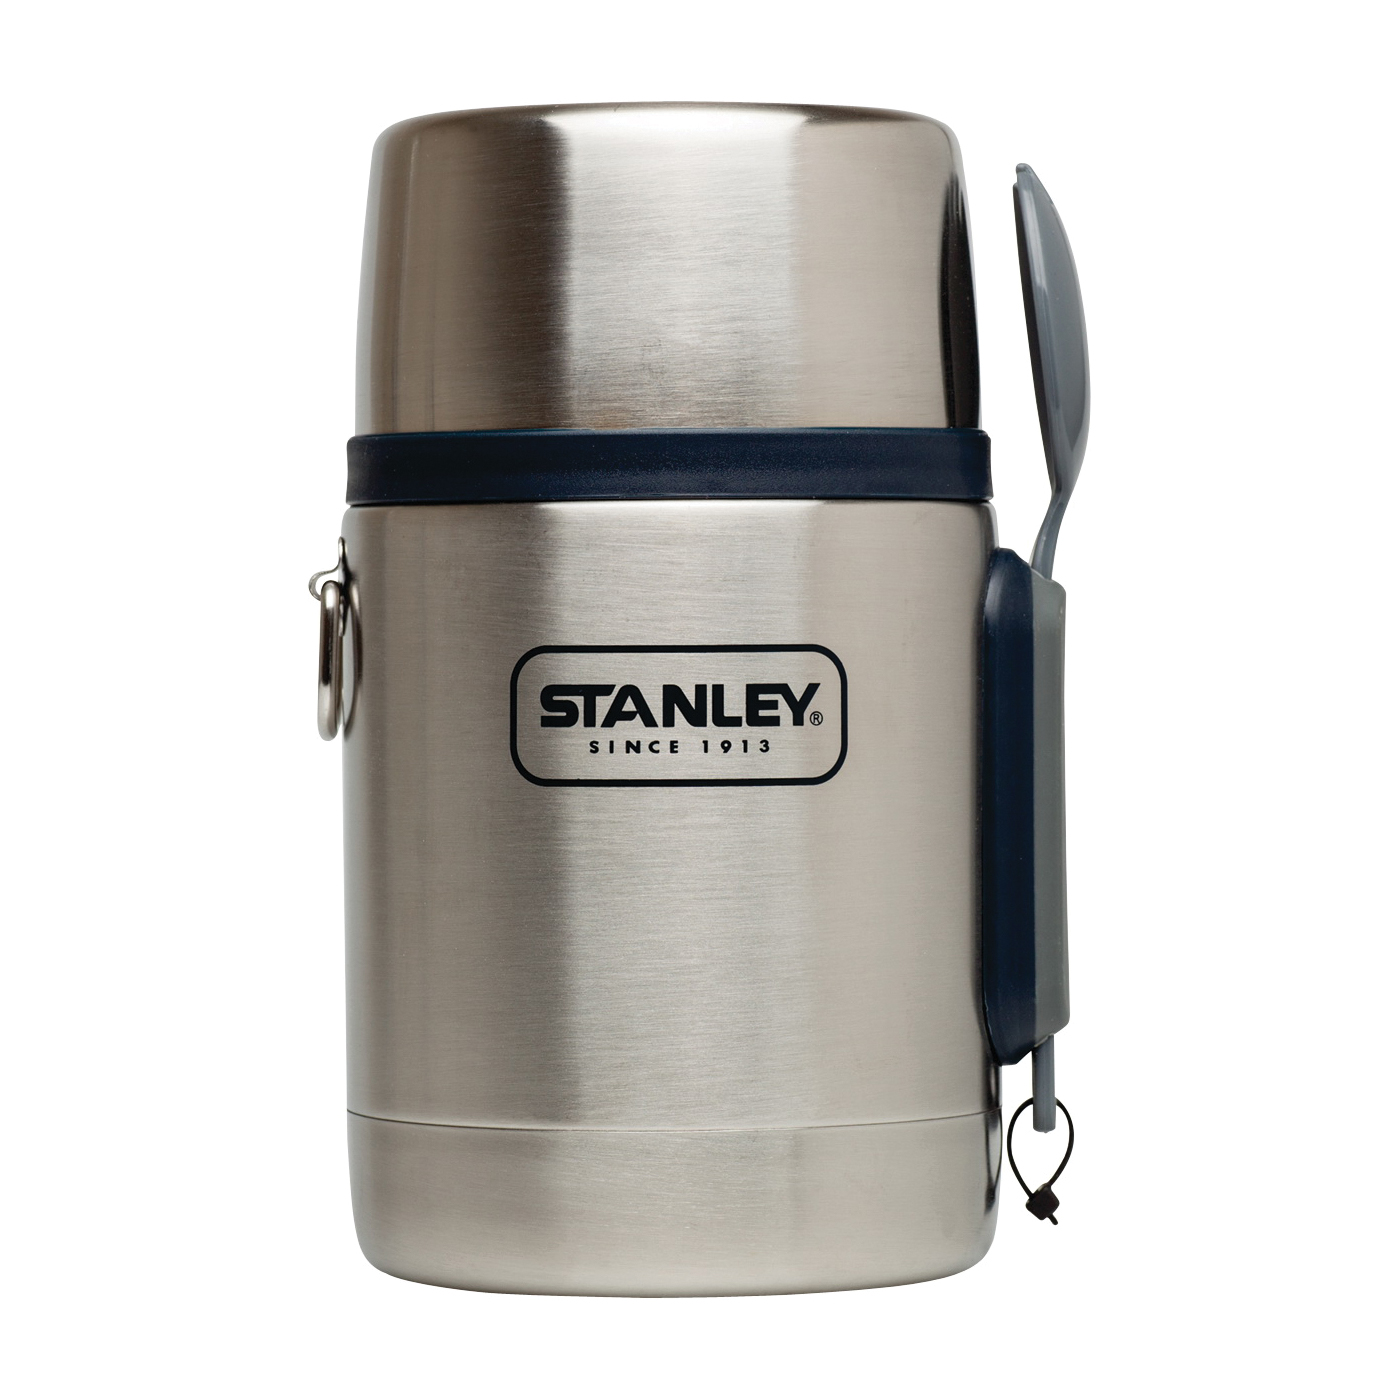 Picture of STANLEY 10-01287-021 Food Jar, 18 oz Capacity, 18/8 Stainless Steel, 4-1/2 in L, 3.7 in W, 6.9 in H